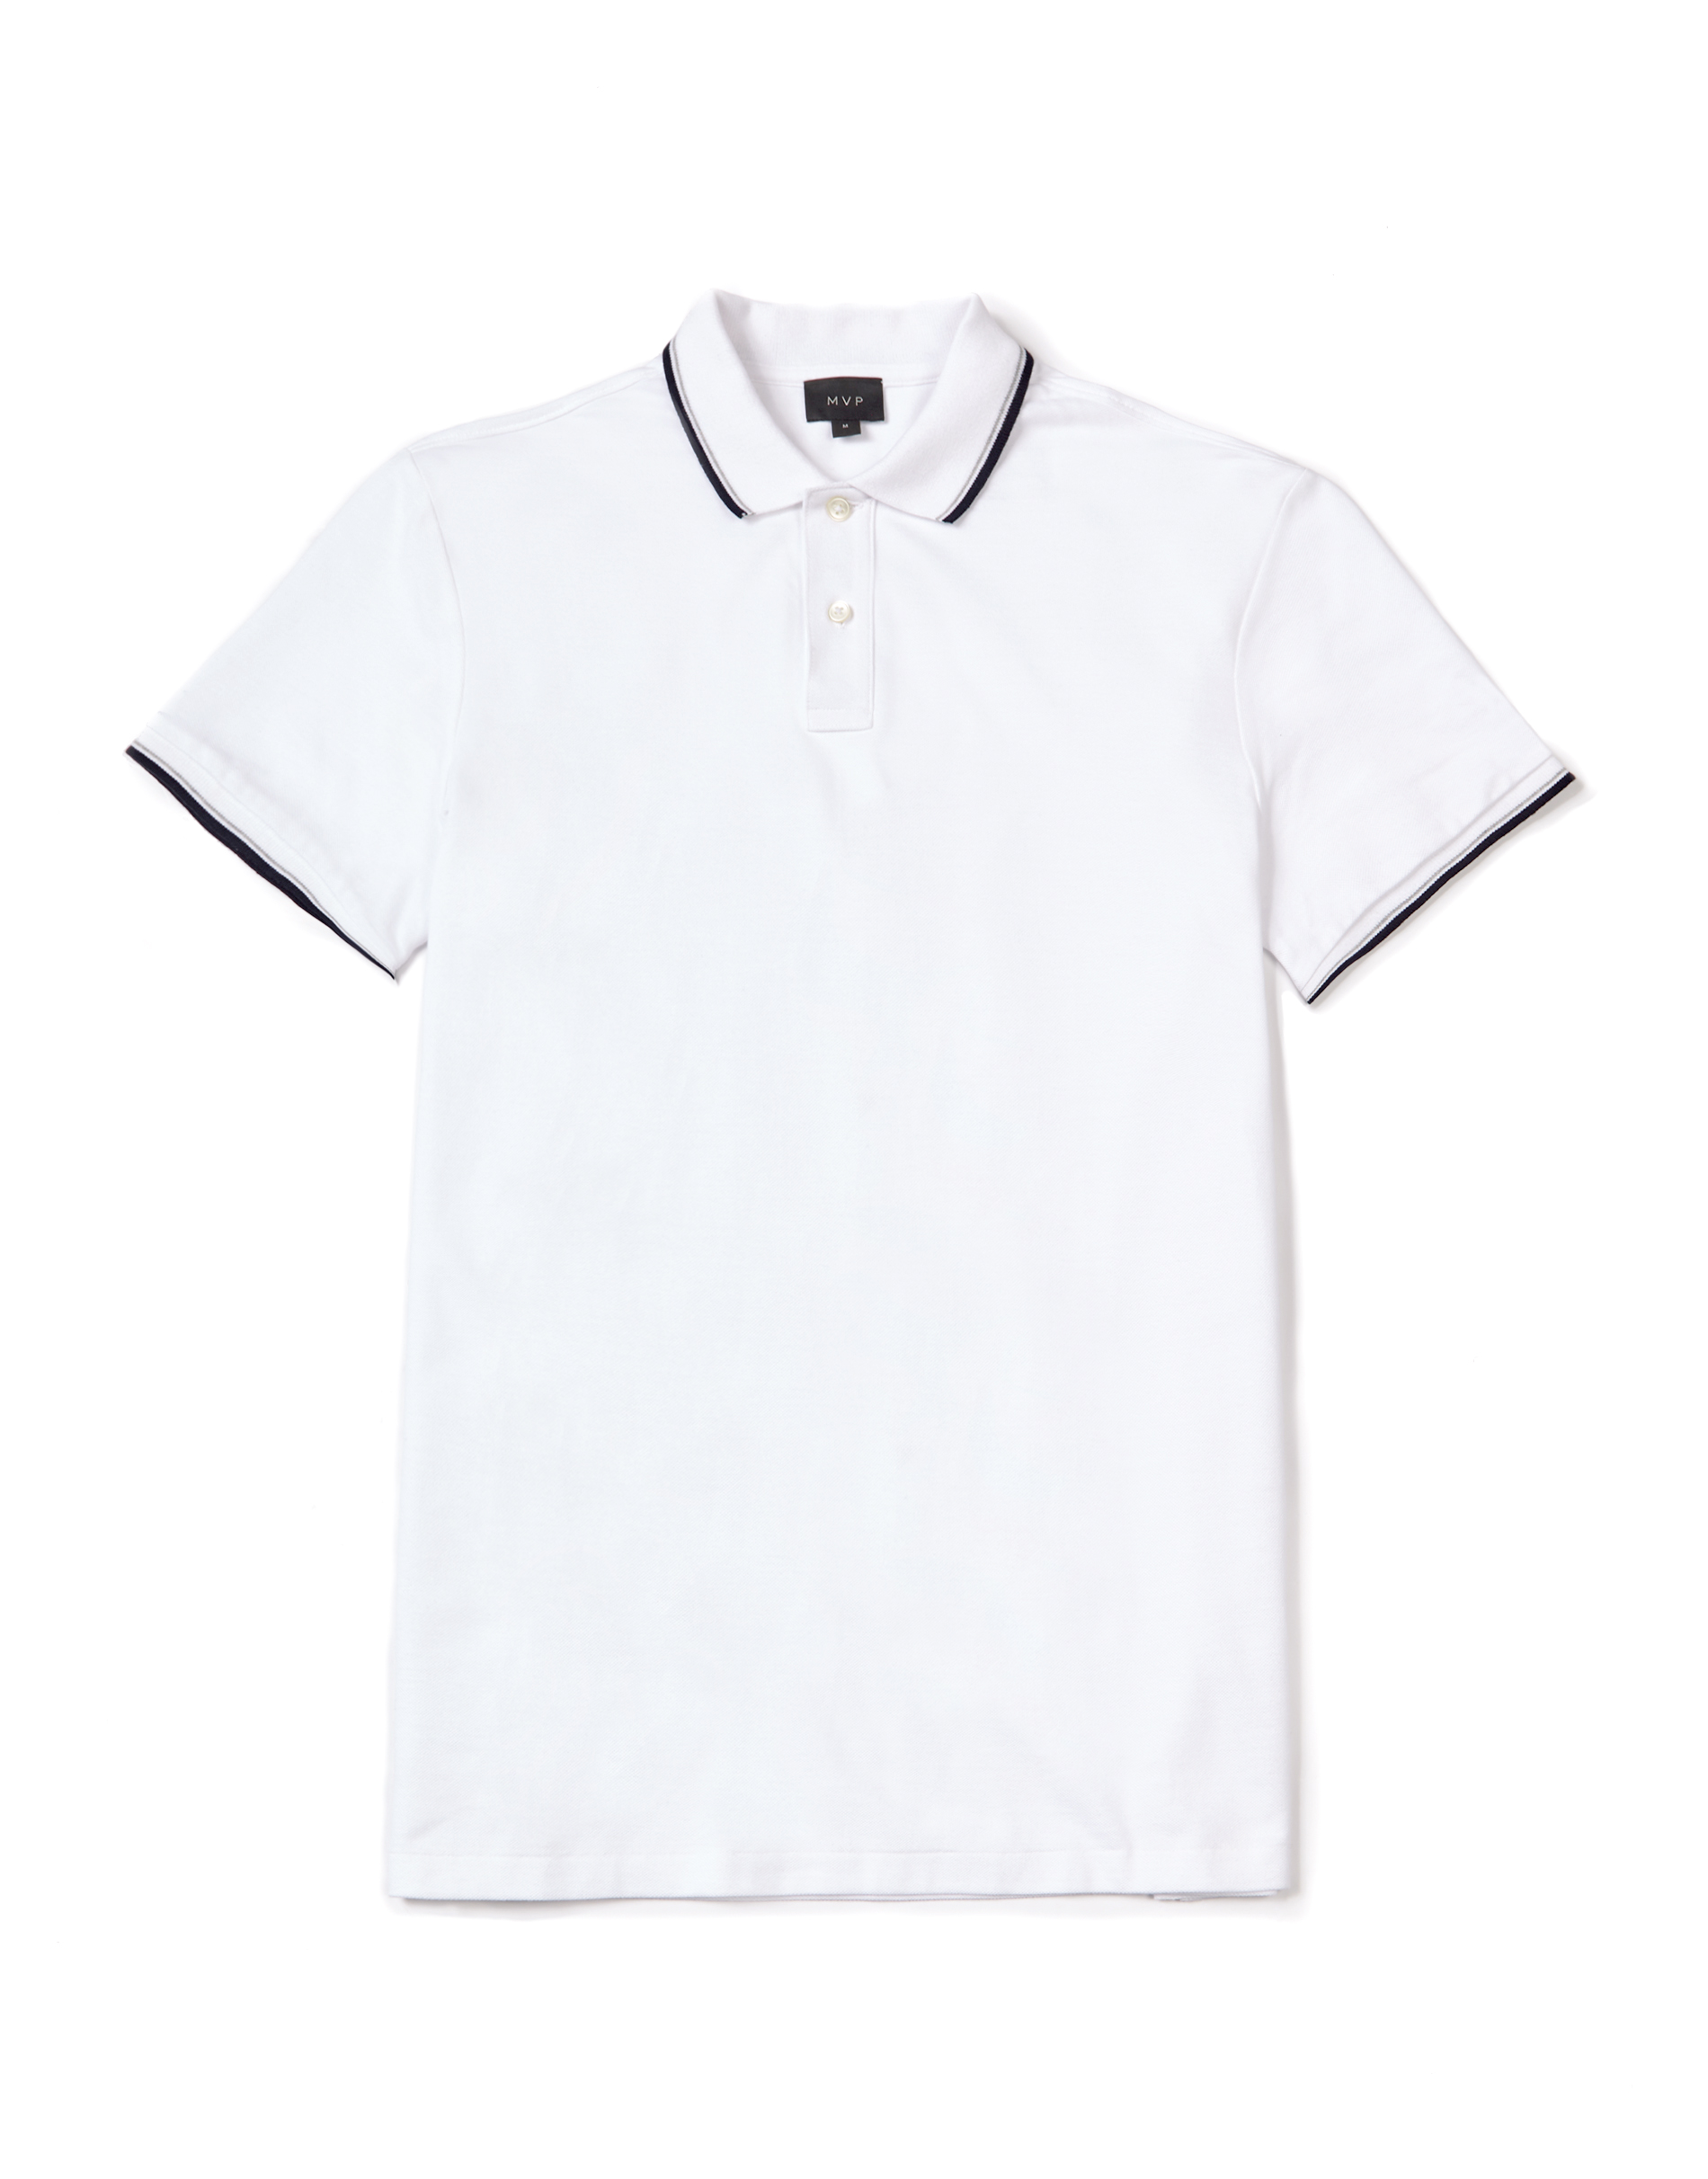 MVP Wilkes Pique Polo with Contrast Tipping - White